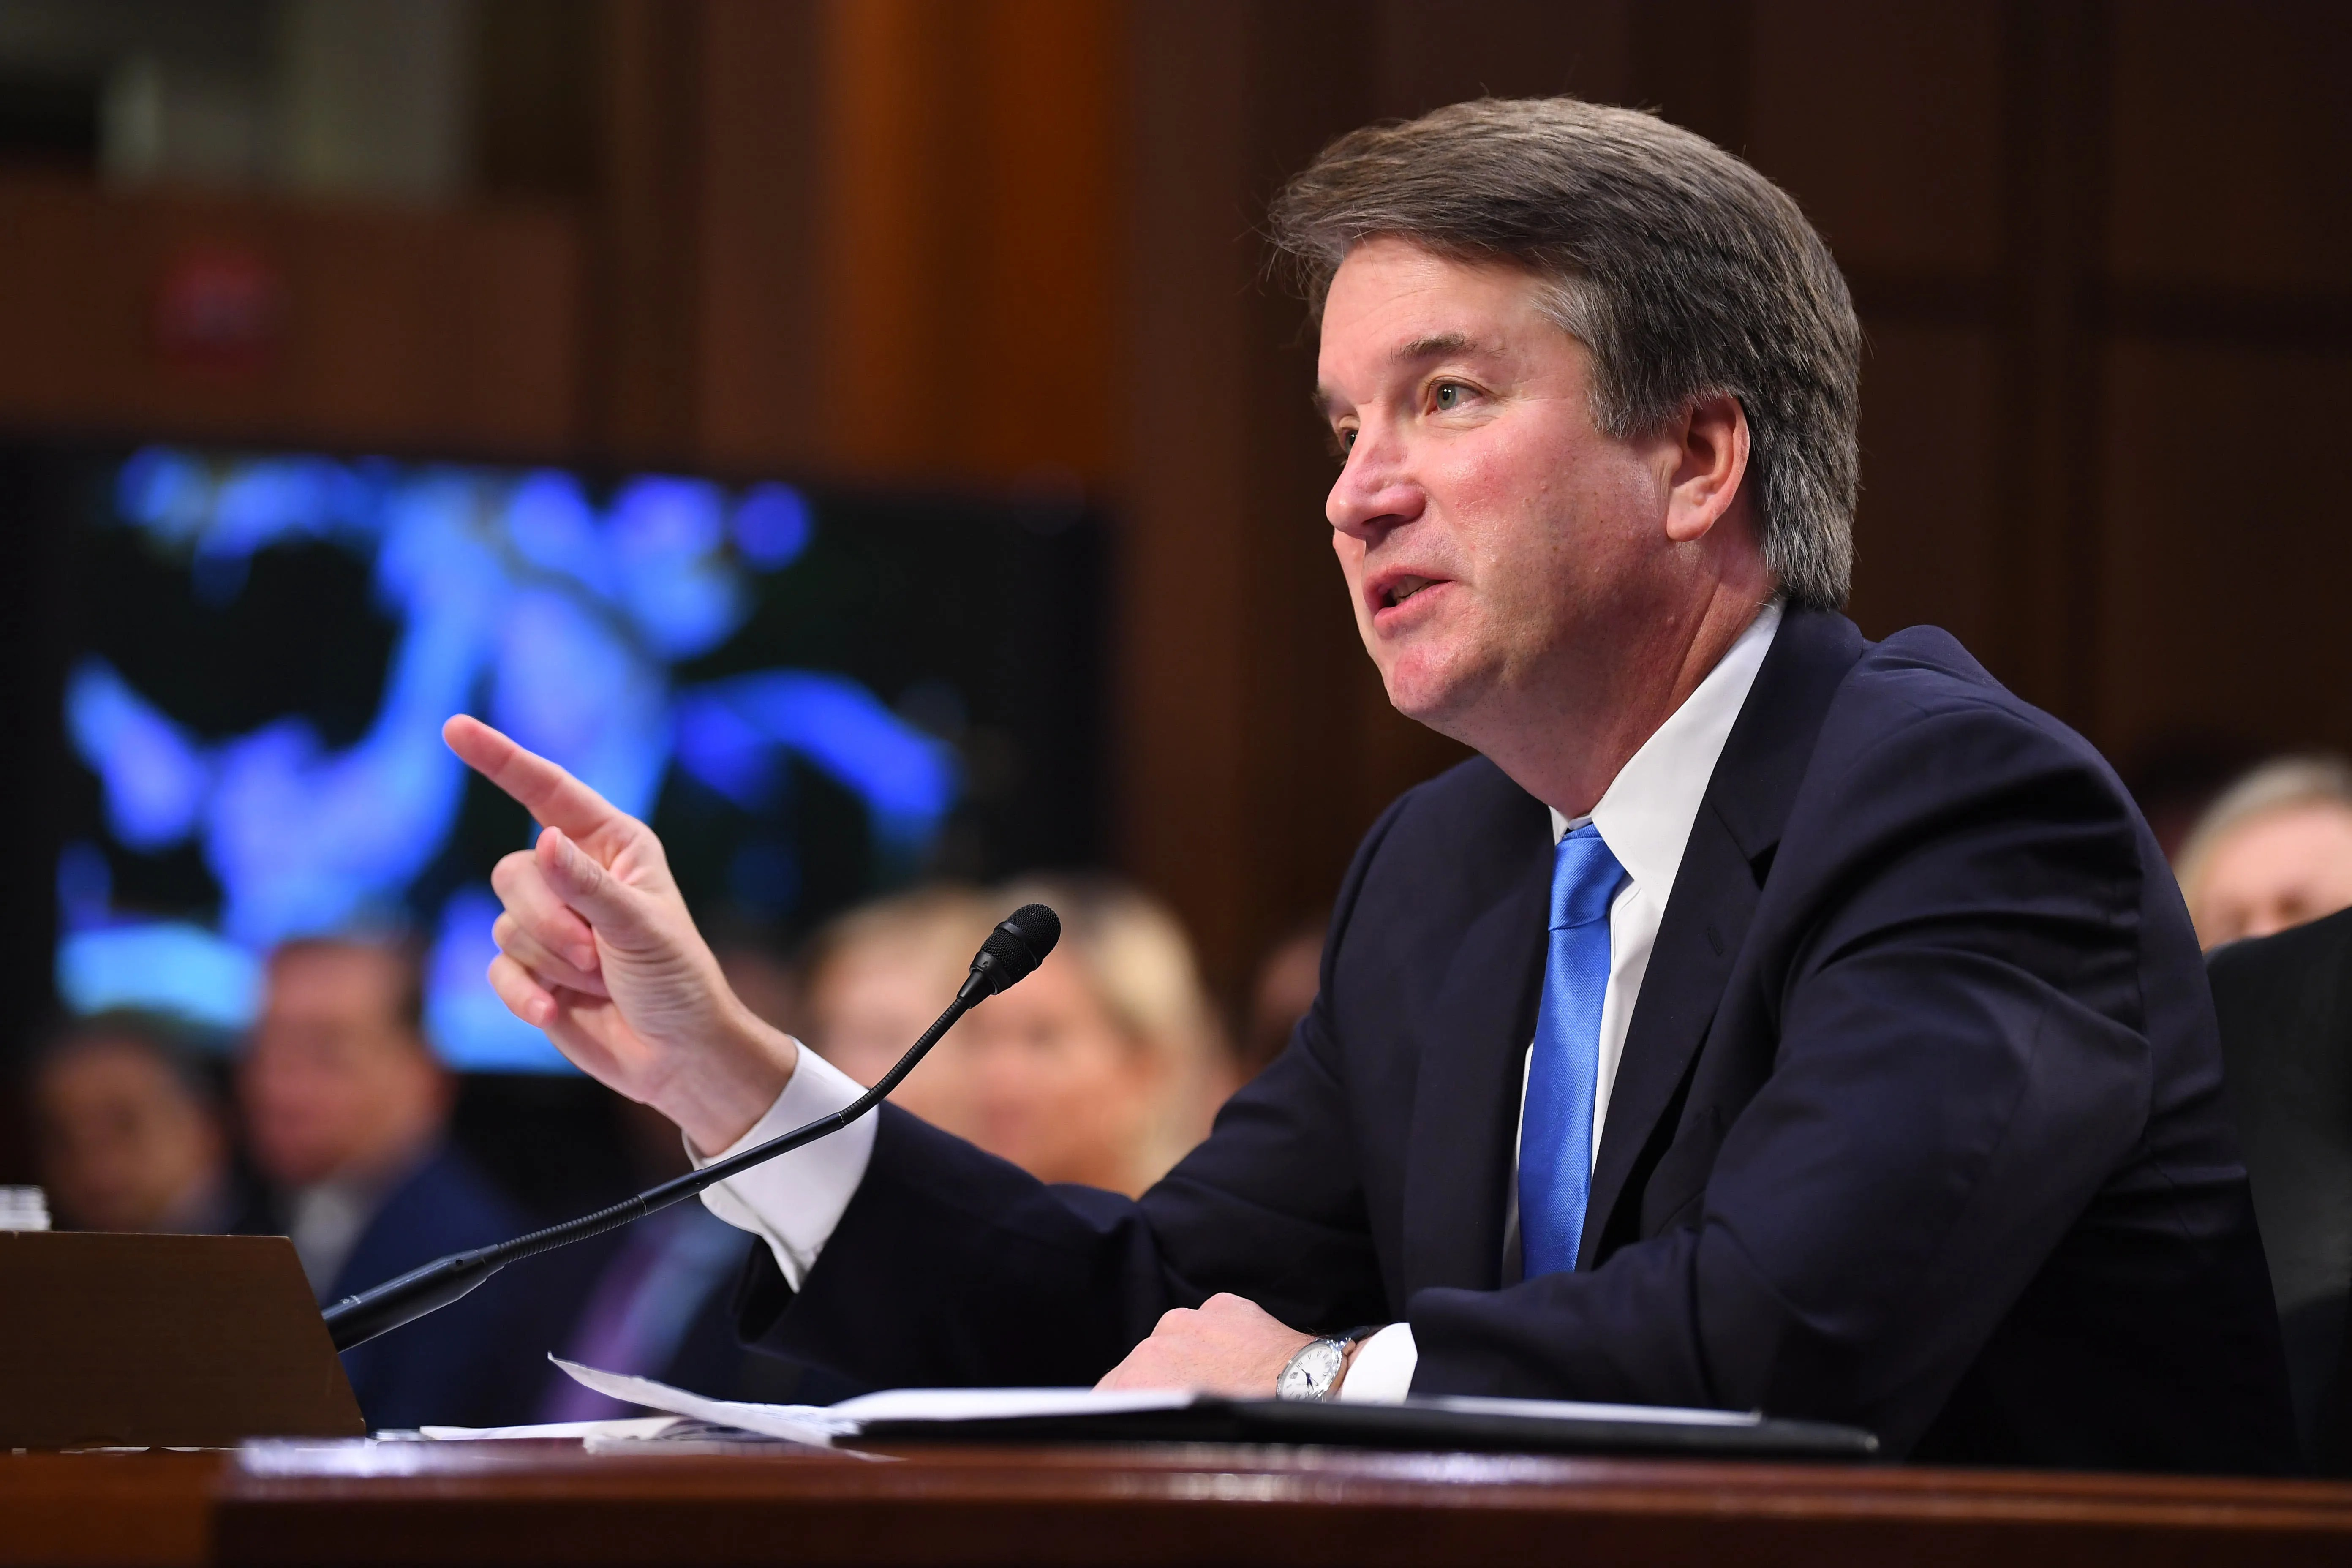 Supreme Court candidate Brett Kavanaugh appears before the Senate Judiciary Committee during its confirmation hearing on September 5, 2018.